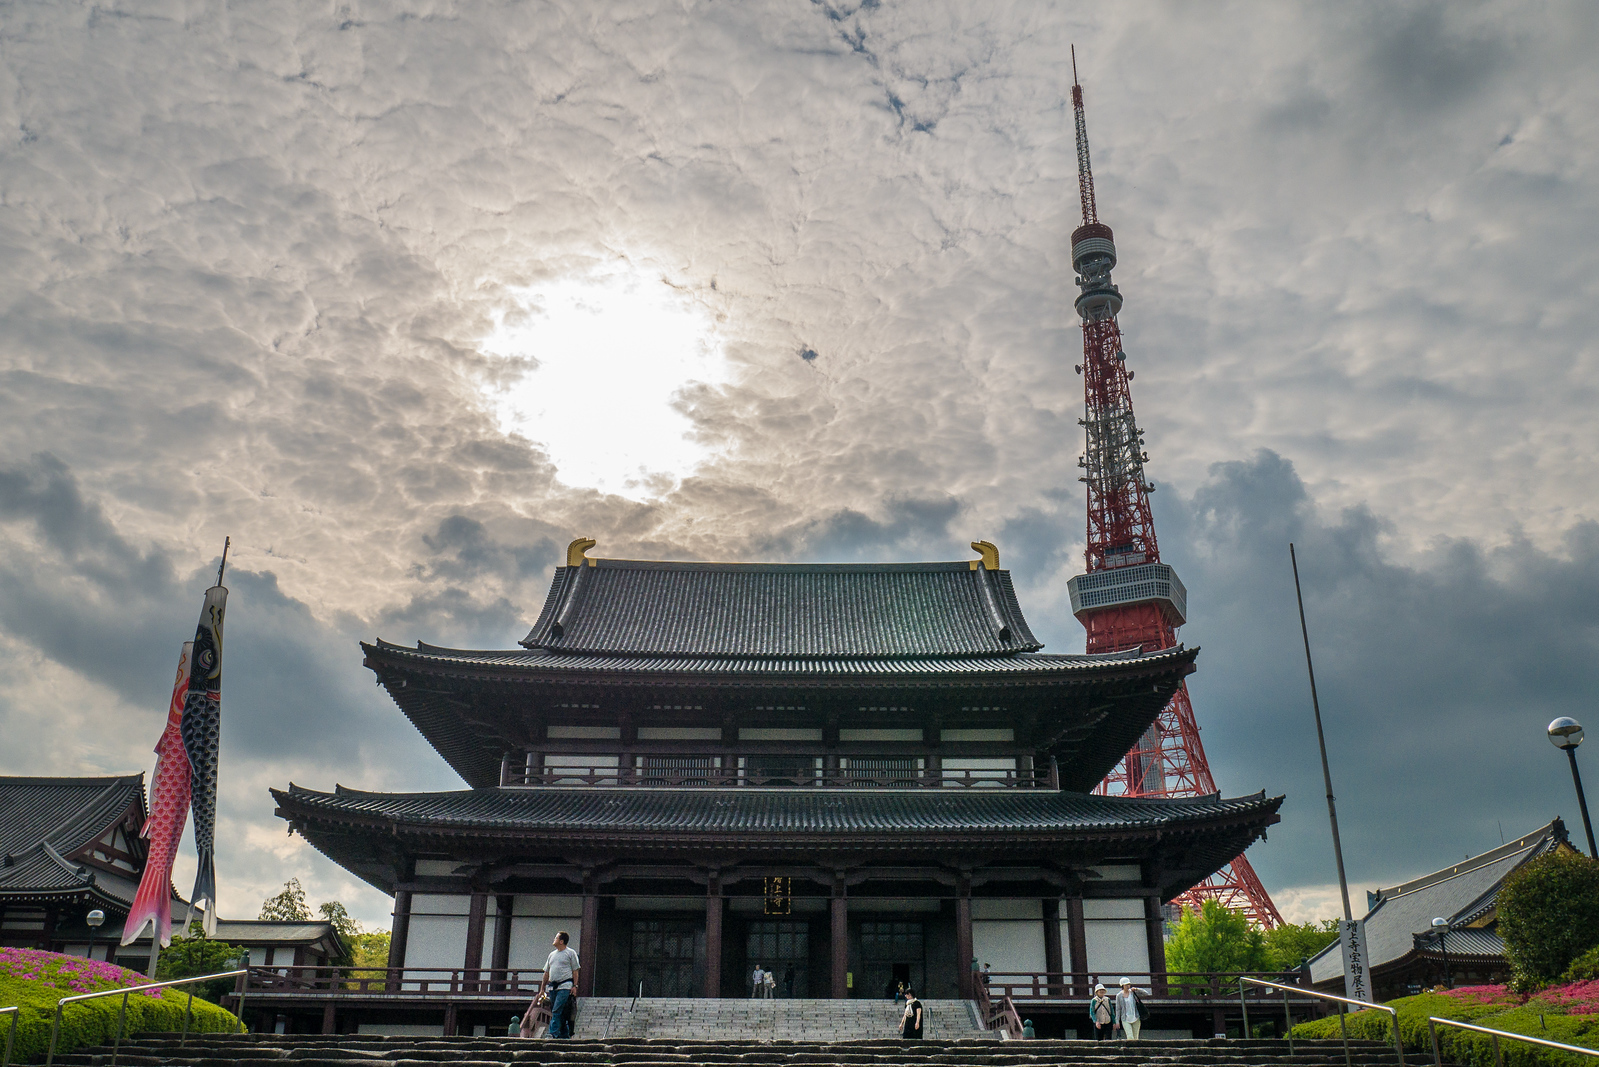 Zojo-ji Temple with Tokyo Temple in the background